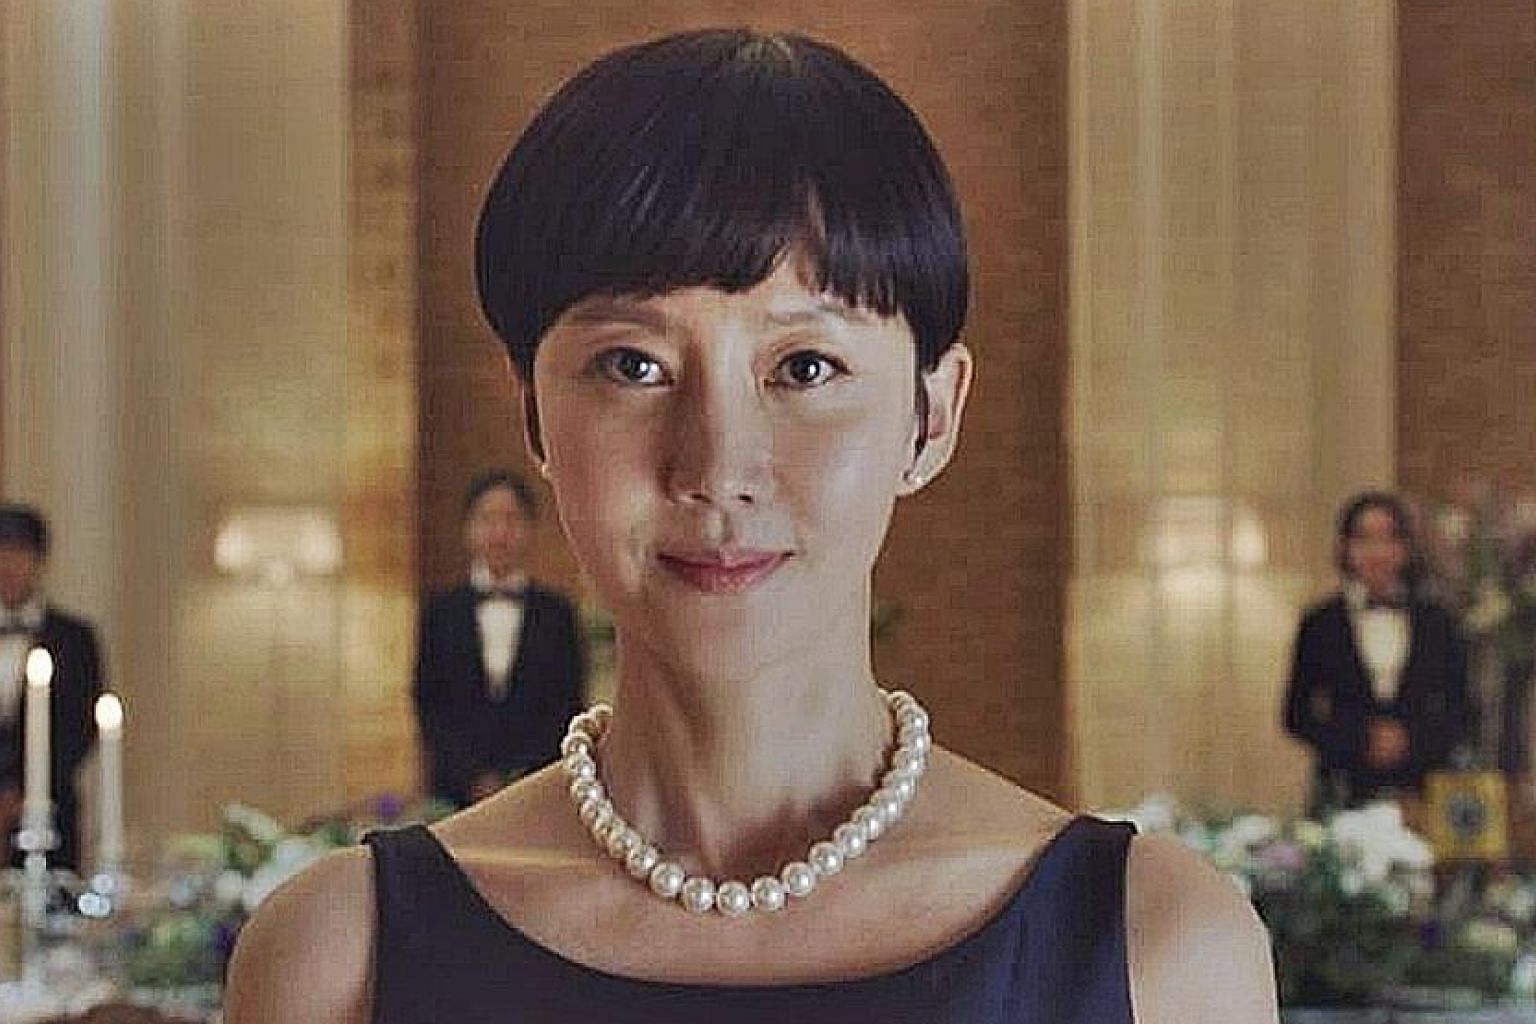 Yum Jung-ah plays a rich housewife with a competitive streak.